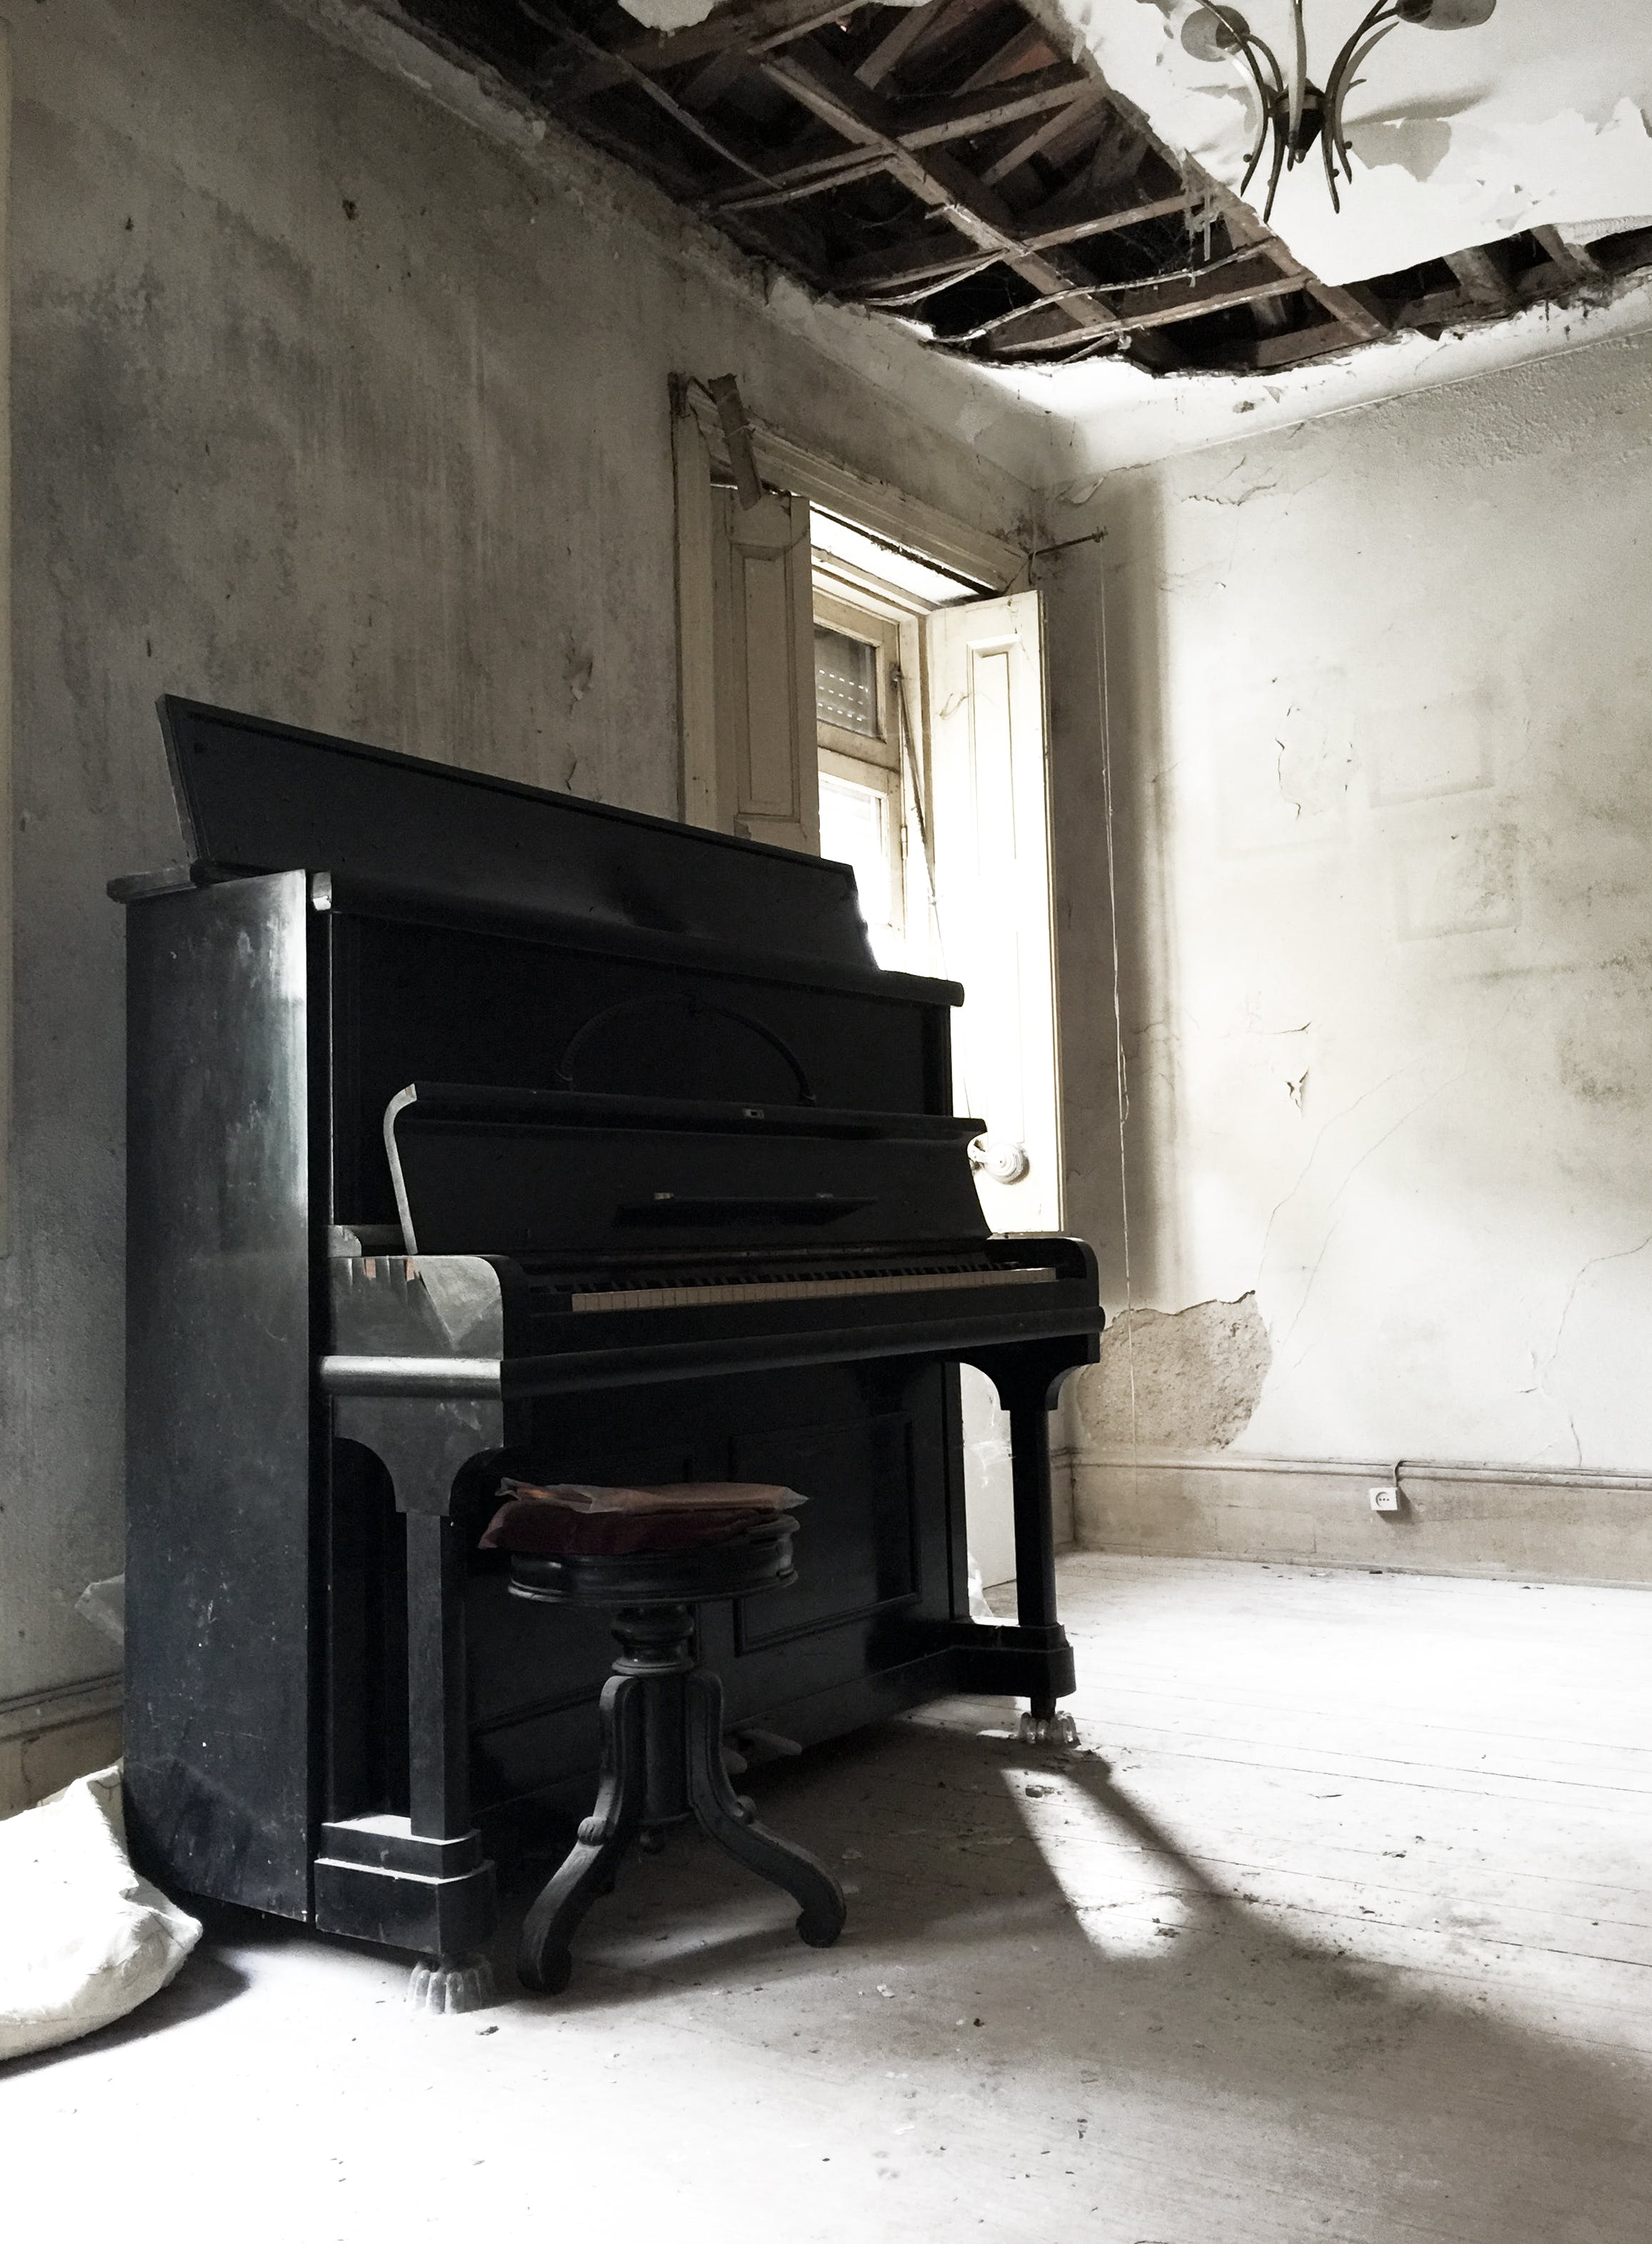 Free stock photo of abandoned, abandoned building, old house, piano